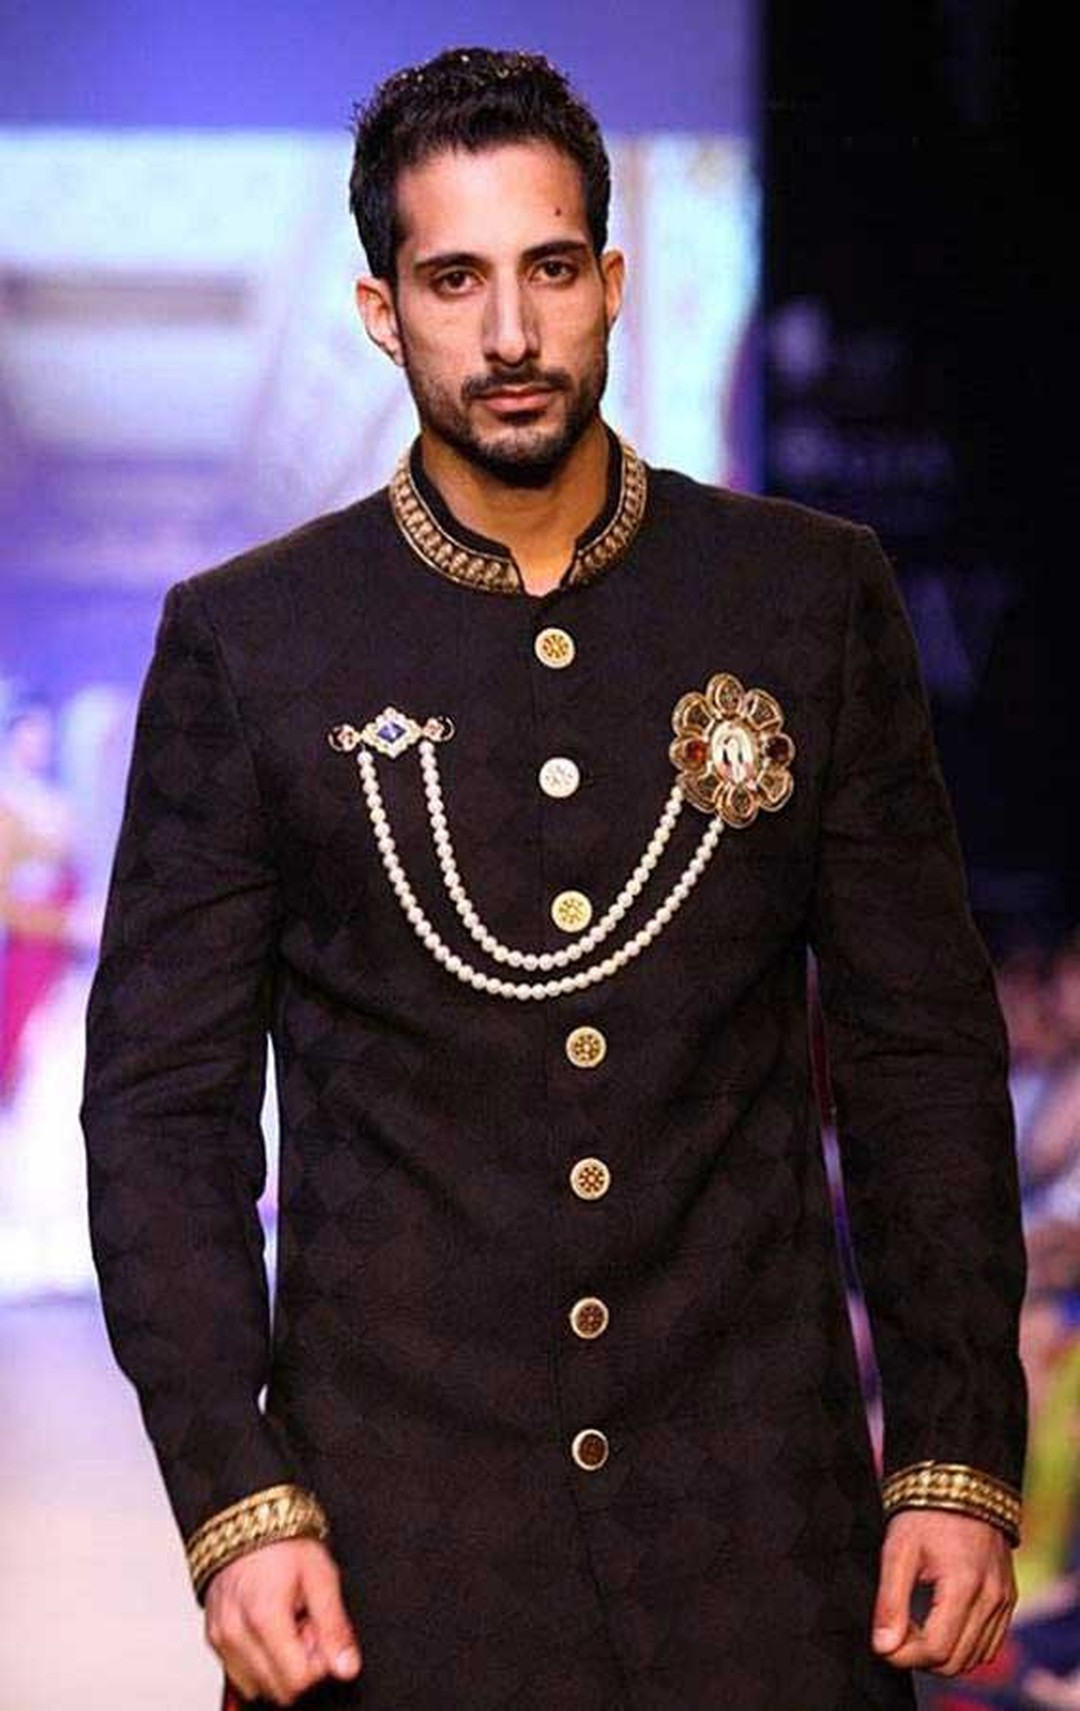 A model at IIJW 2013 wearing Golecha jewels, including jewelled kurta buttons and an elaborate brooch.